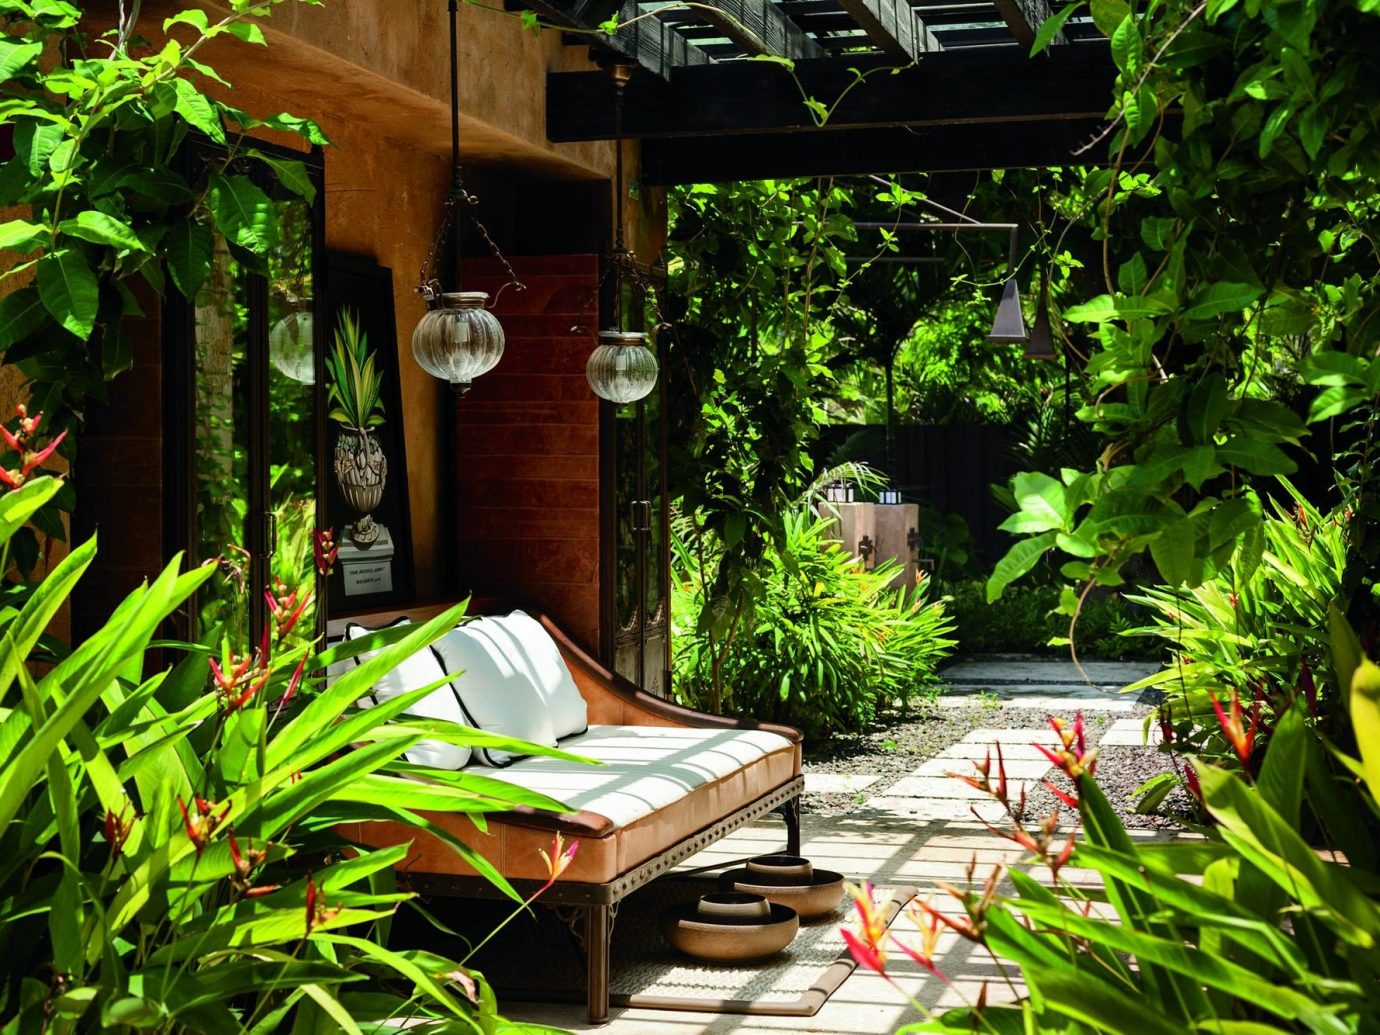 Hotels tree plant outdoor green backyard yard Garden botany grass house Courtyard flower Jungle outdoor structure pond lawn